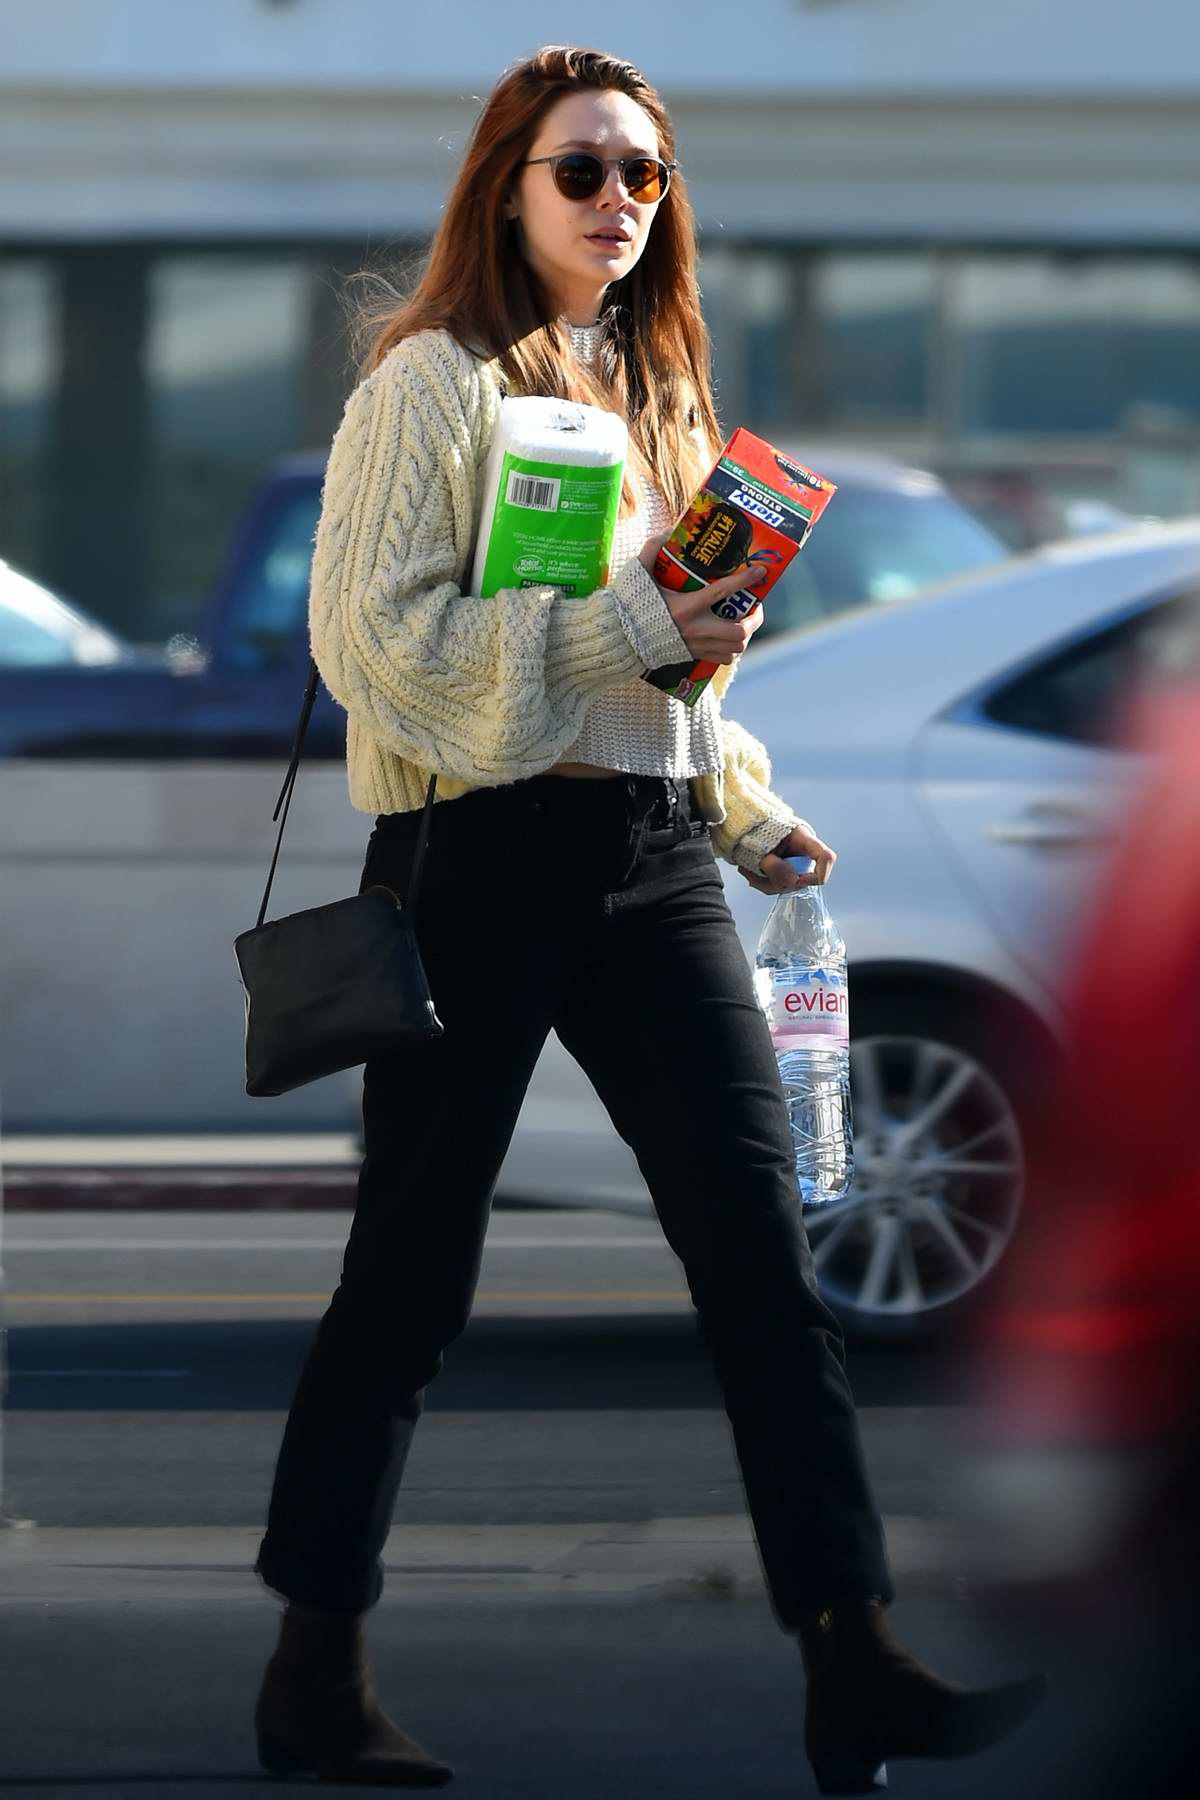 726af018a13b3e Elizabeth Olsen steps out sporting a new hair color as she picks up some  cleaning supplies · Elizabeth Olsen Los Angeles ...